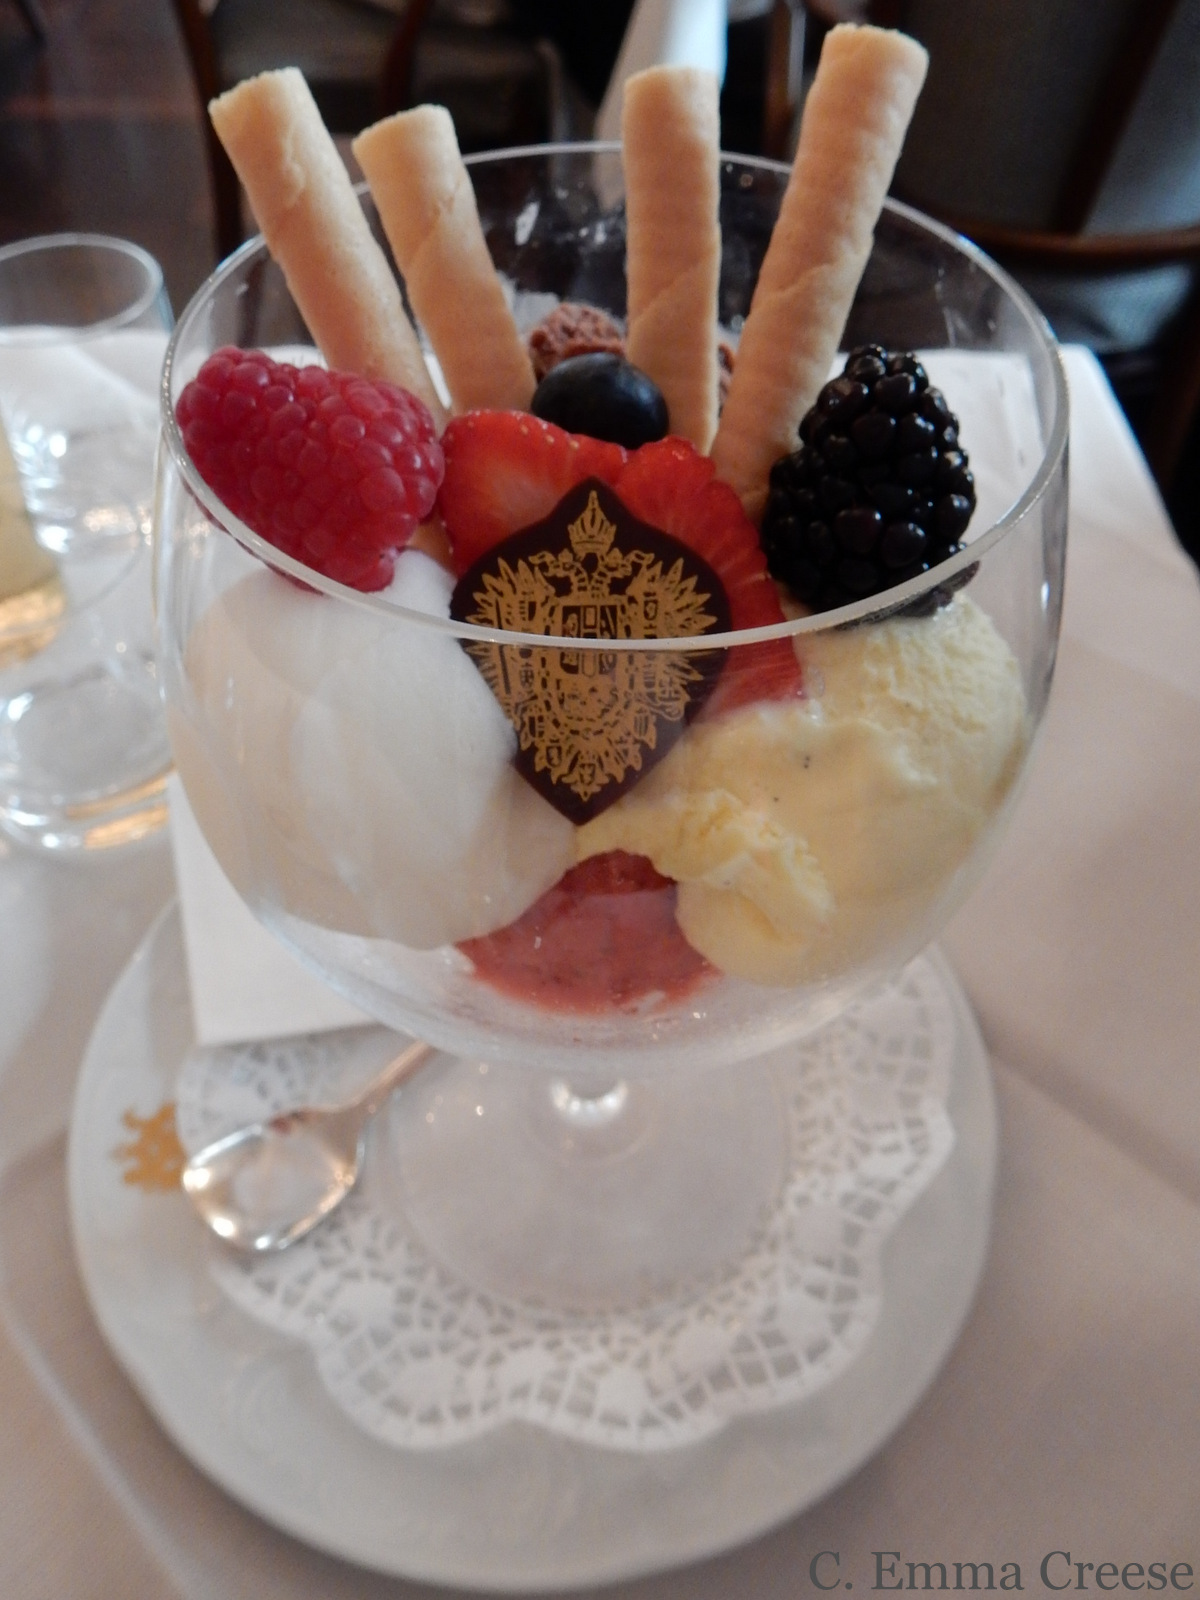 Hotel Imperial luxury cake in Vienna Adventures of a London Kiwi